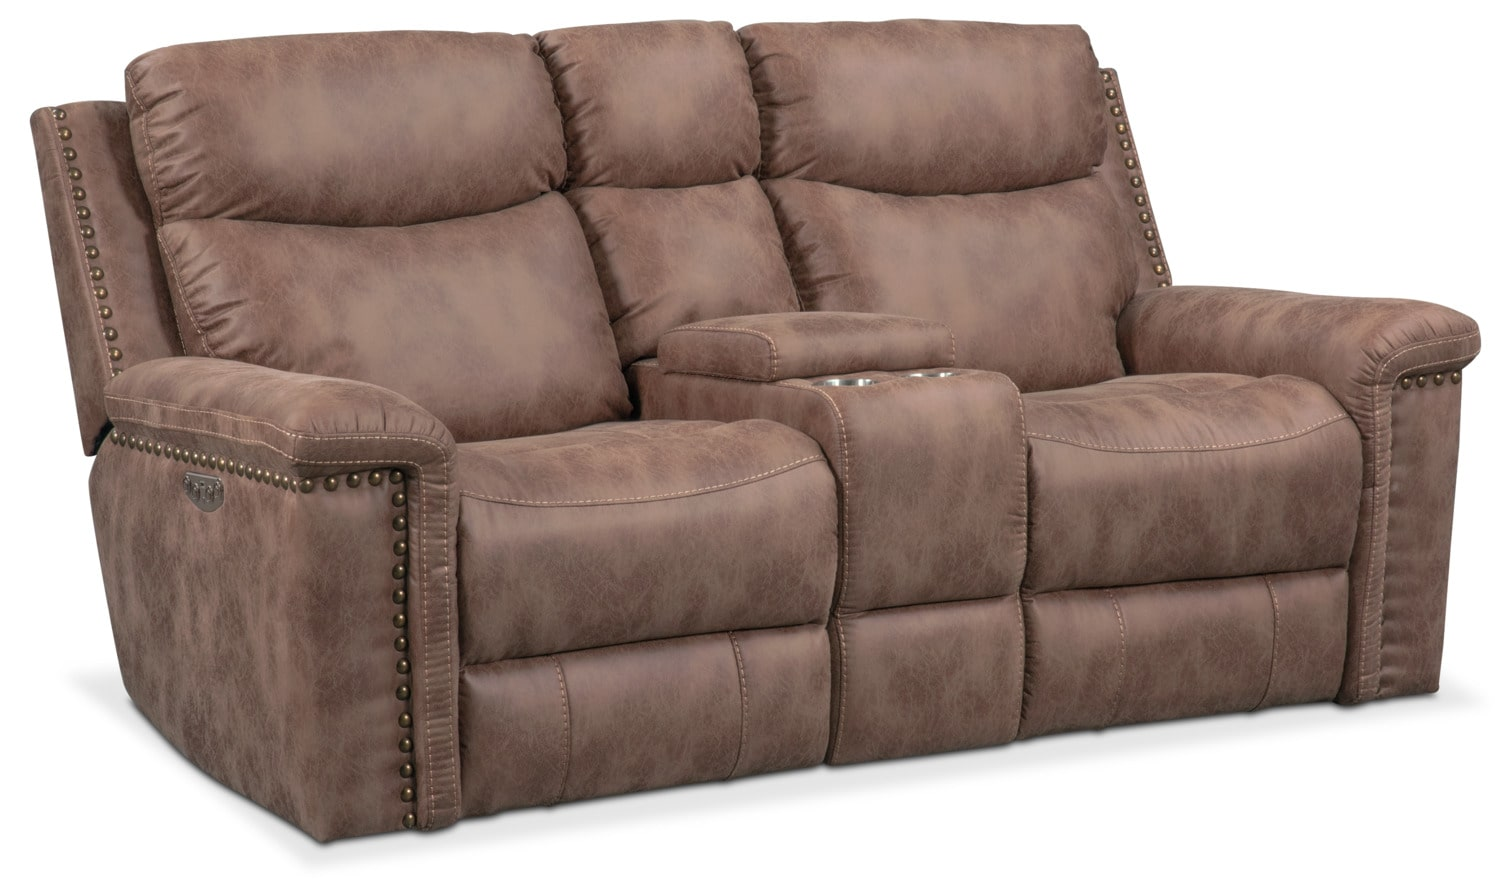 Living Room Furniture - Montana Dual-Power Reclining Loveseat